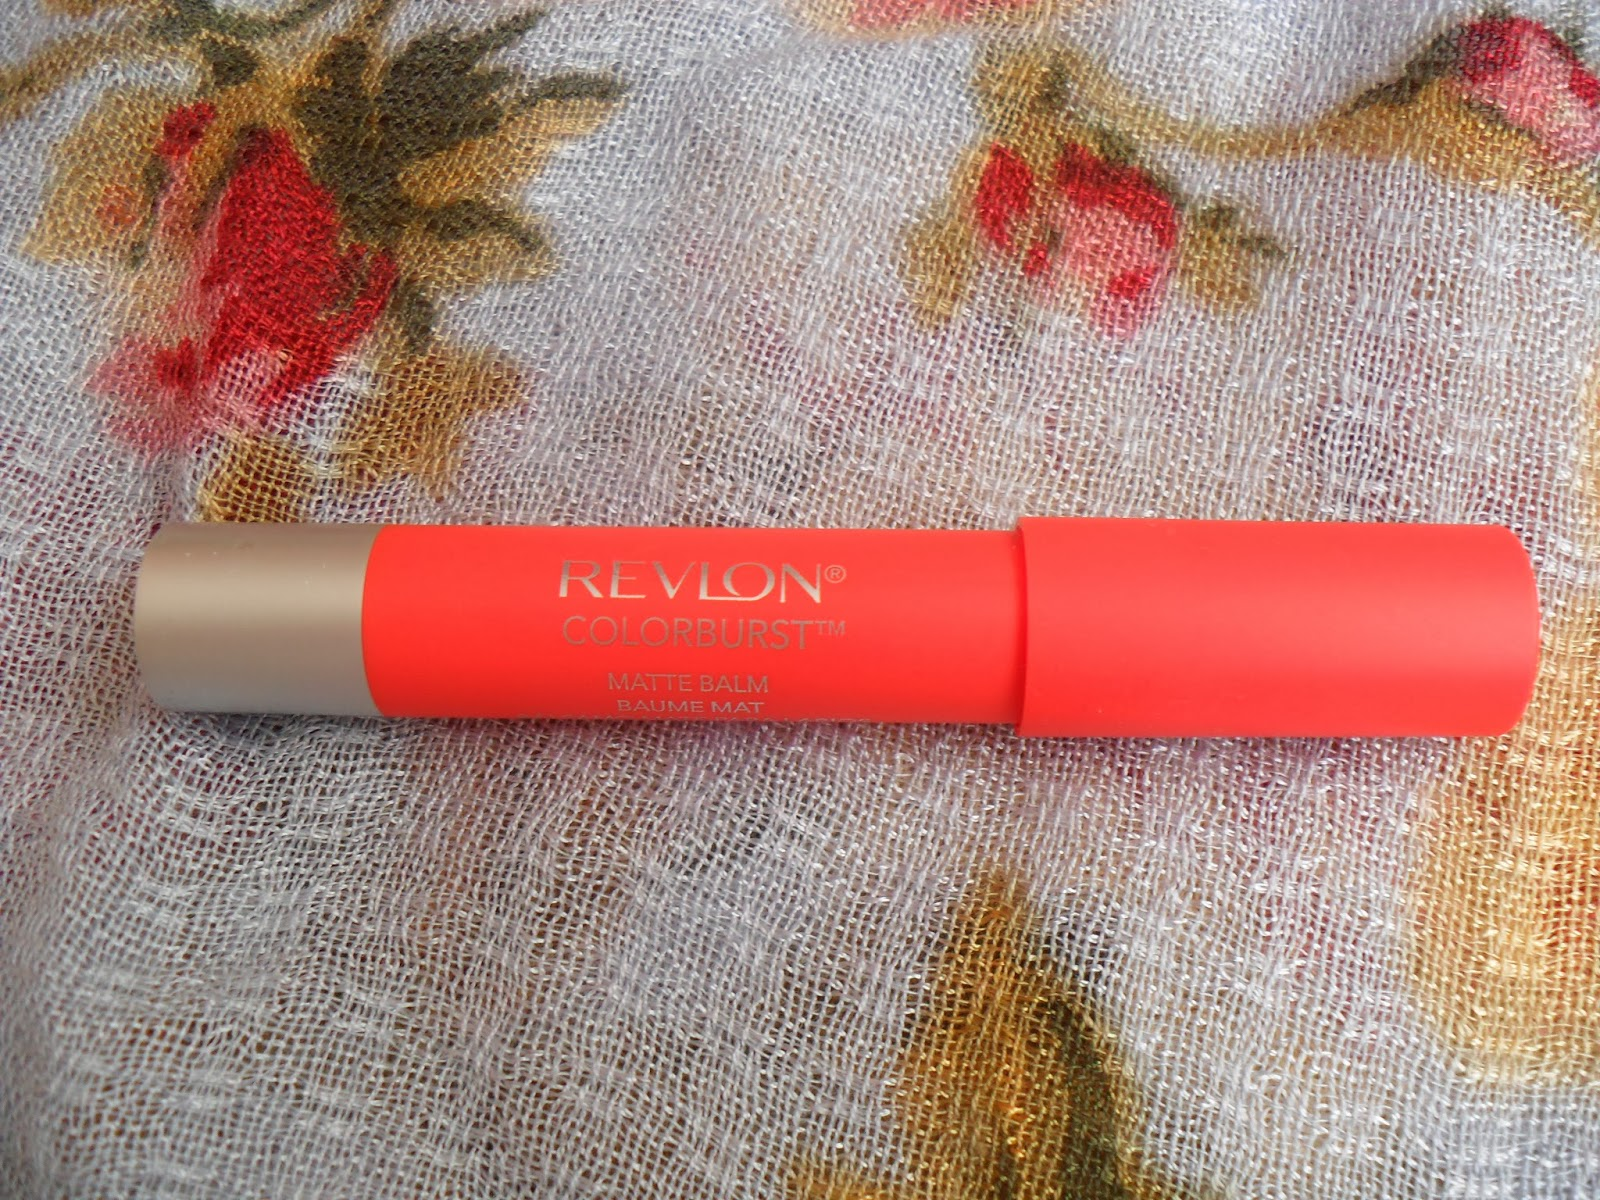 A pictures of a Revlon lip product in Audacious